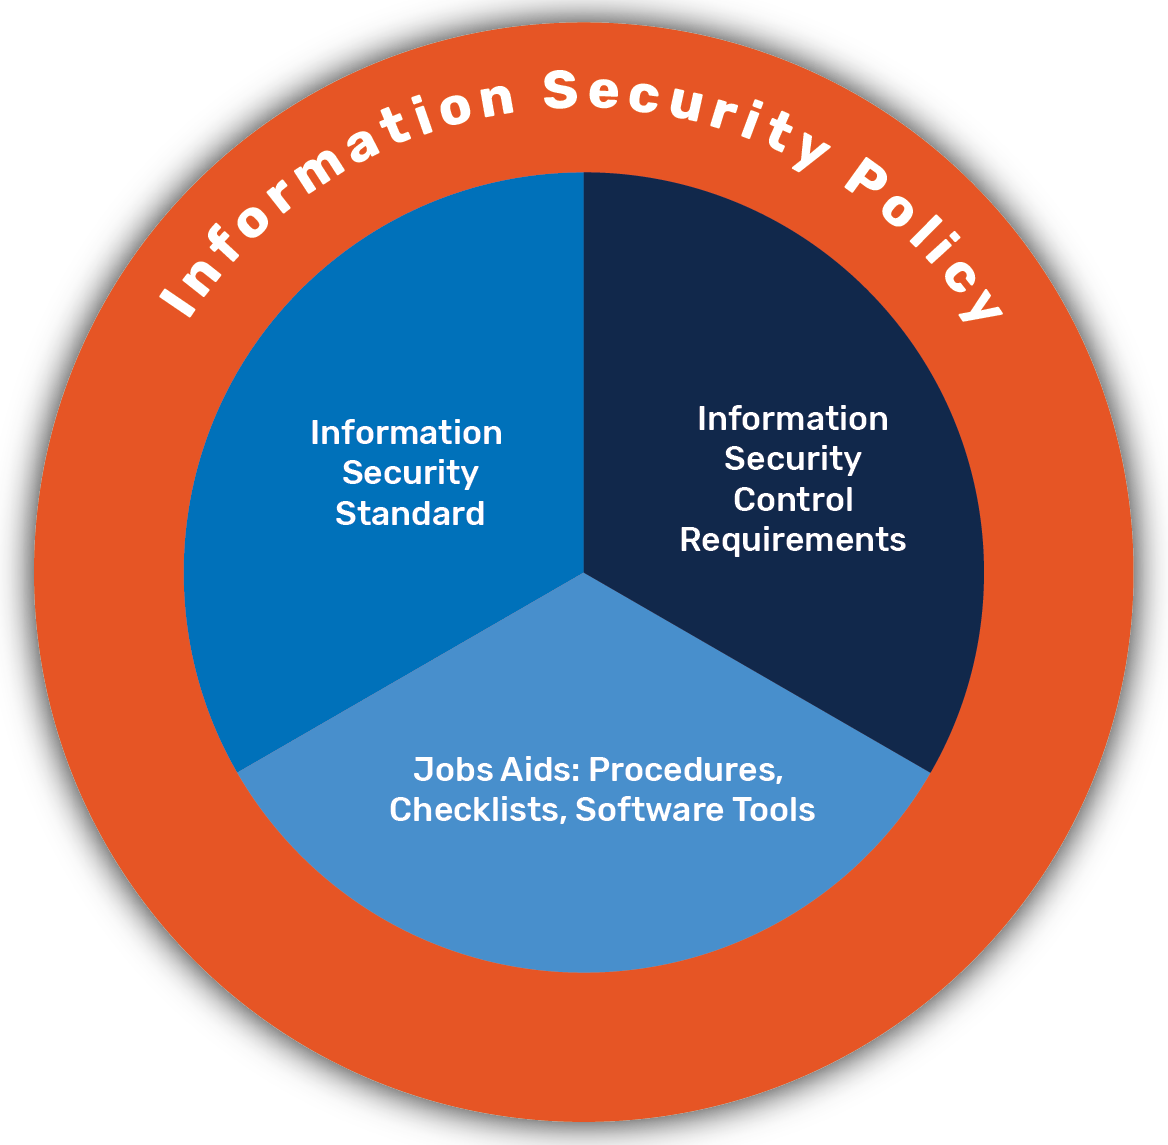 Security Program logo featuring the Data Policy and Information Security Policy circling the Information Security standards, control requirements, and job aids.